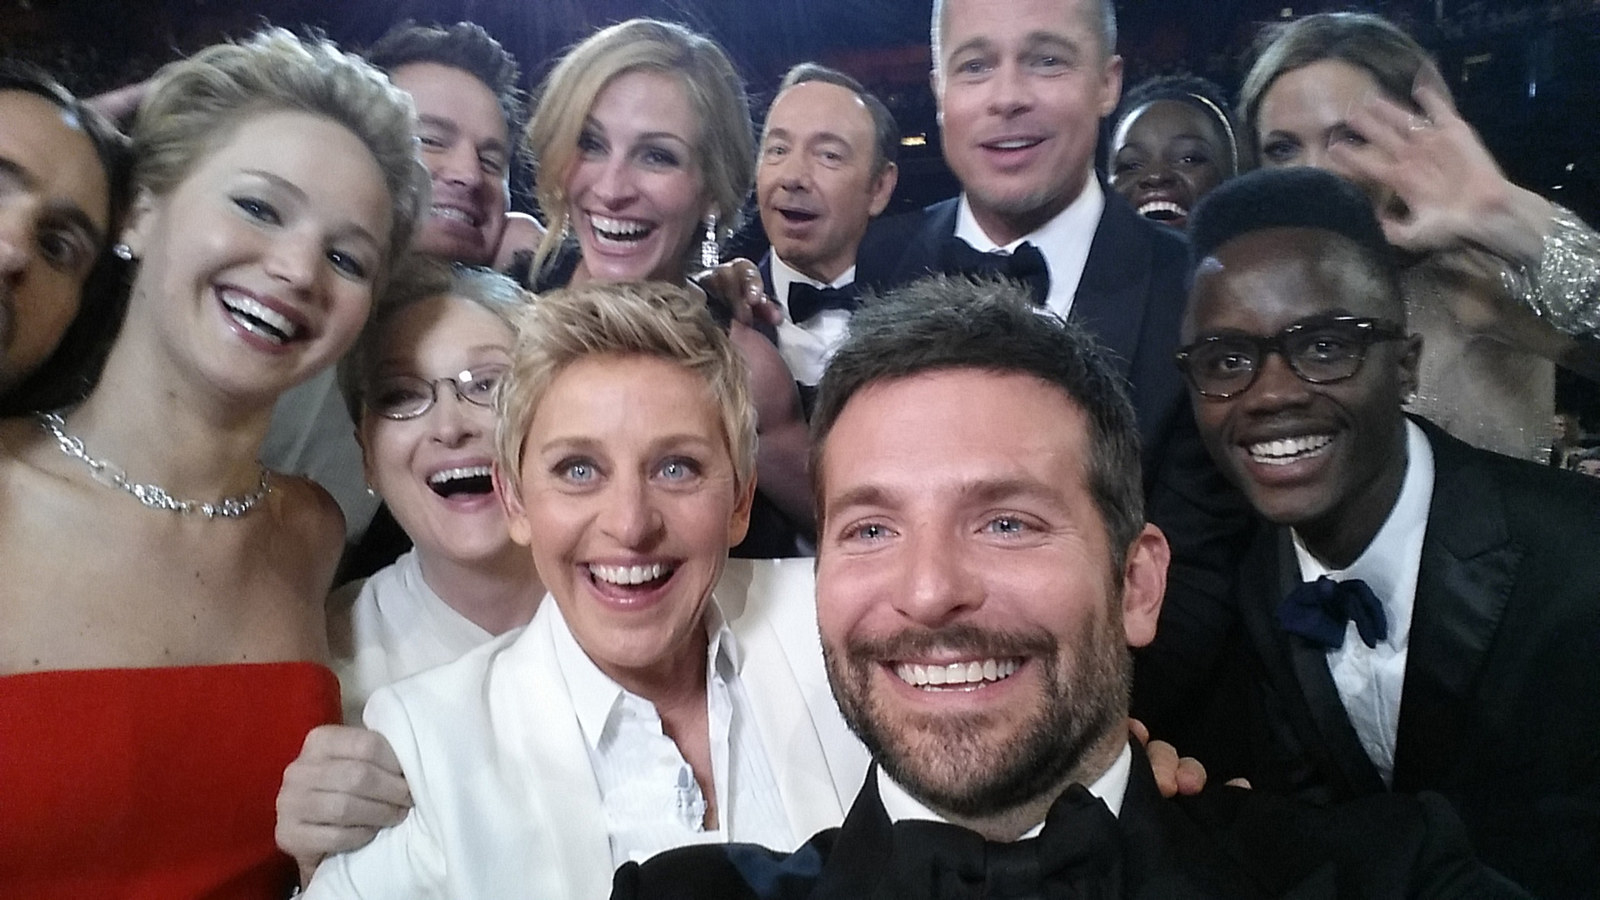 DeGeneres poses for a selfie with Jared Leto, Jennifer Lawrence, Channing Tatum, Meryl Streep, Julia Roberts, Kevin Spacey, Brad Pitt, Lupita Nyong'o, Angelina Jolie, Peter Nyong'o Jr., and Bradley Cooper during the Academy Awards in 2014.